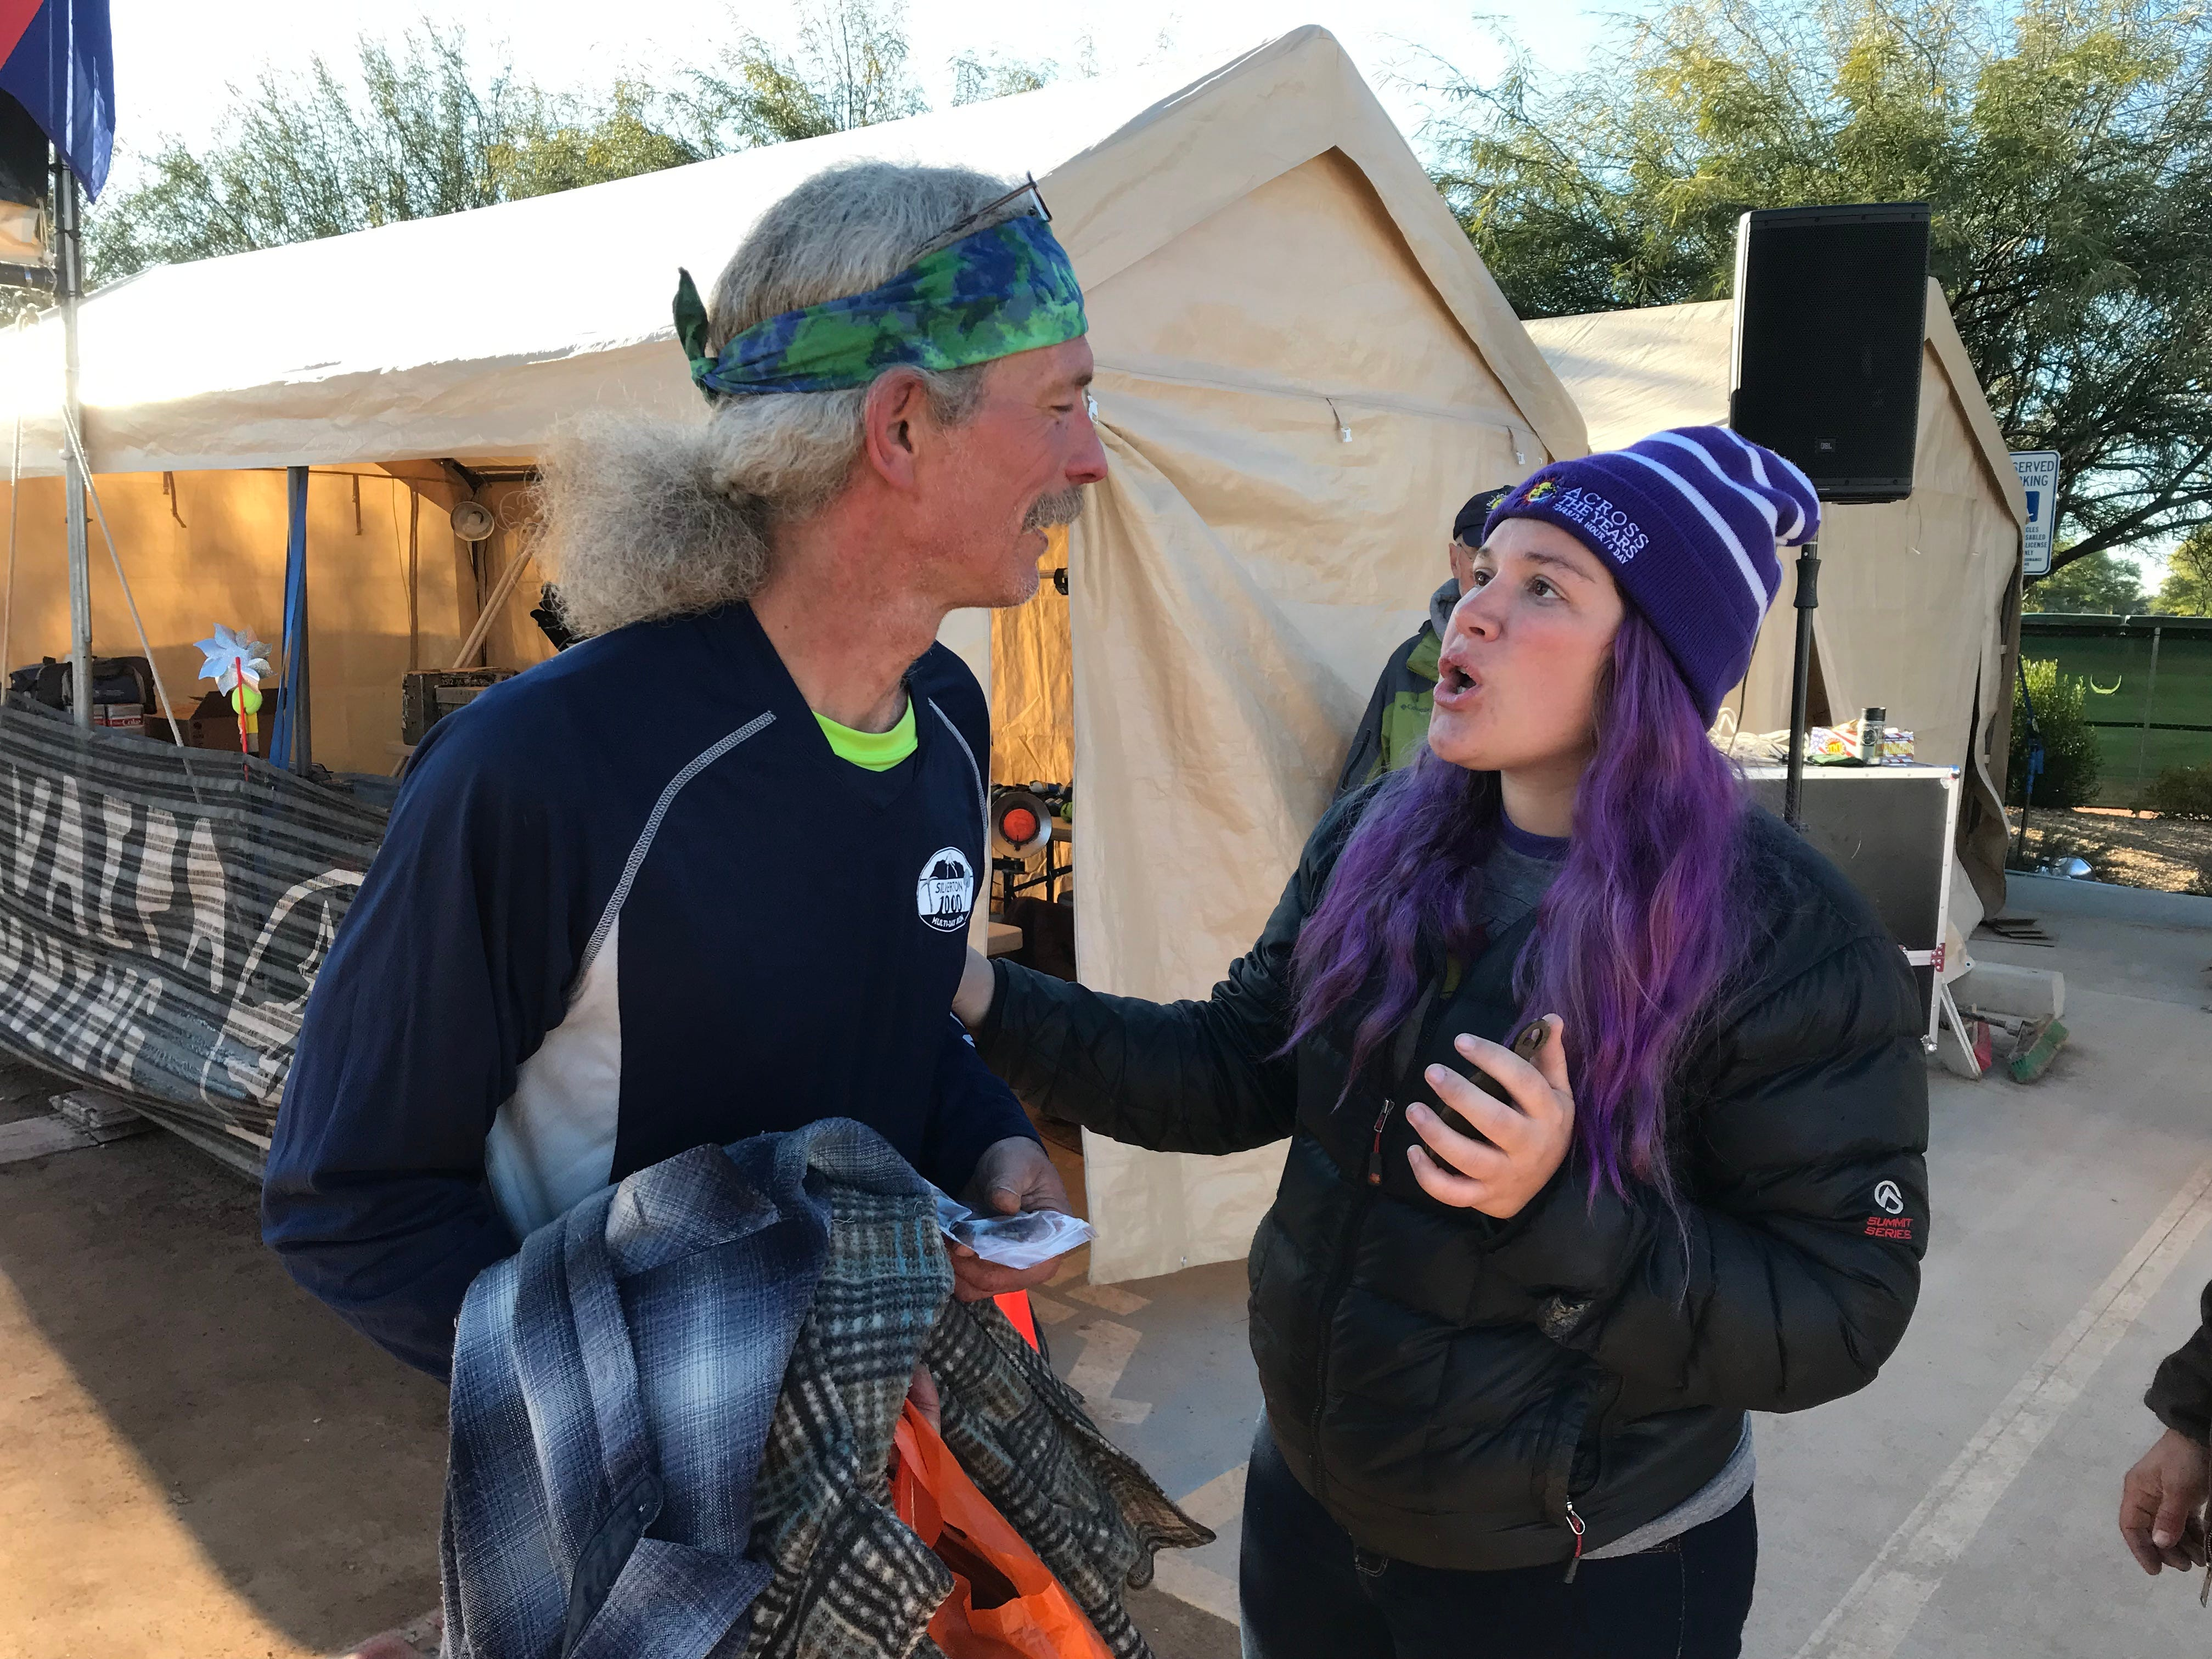 Jubilee Paige (right), director of the Across the Years Race at Camelback Ranch, Glendale, congratulates John Geesler on his finish.